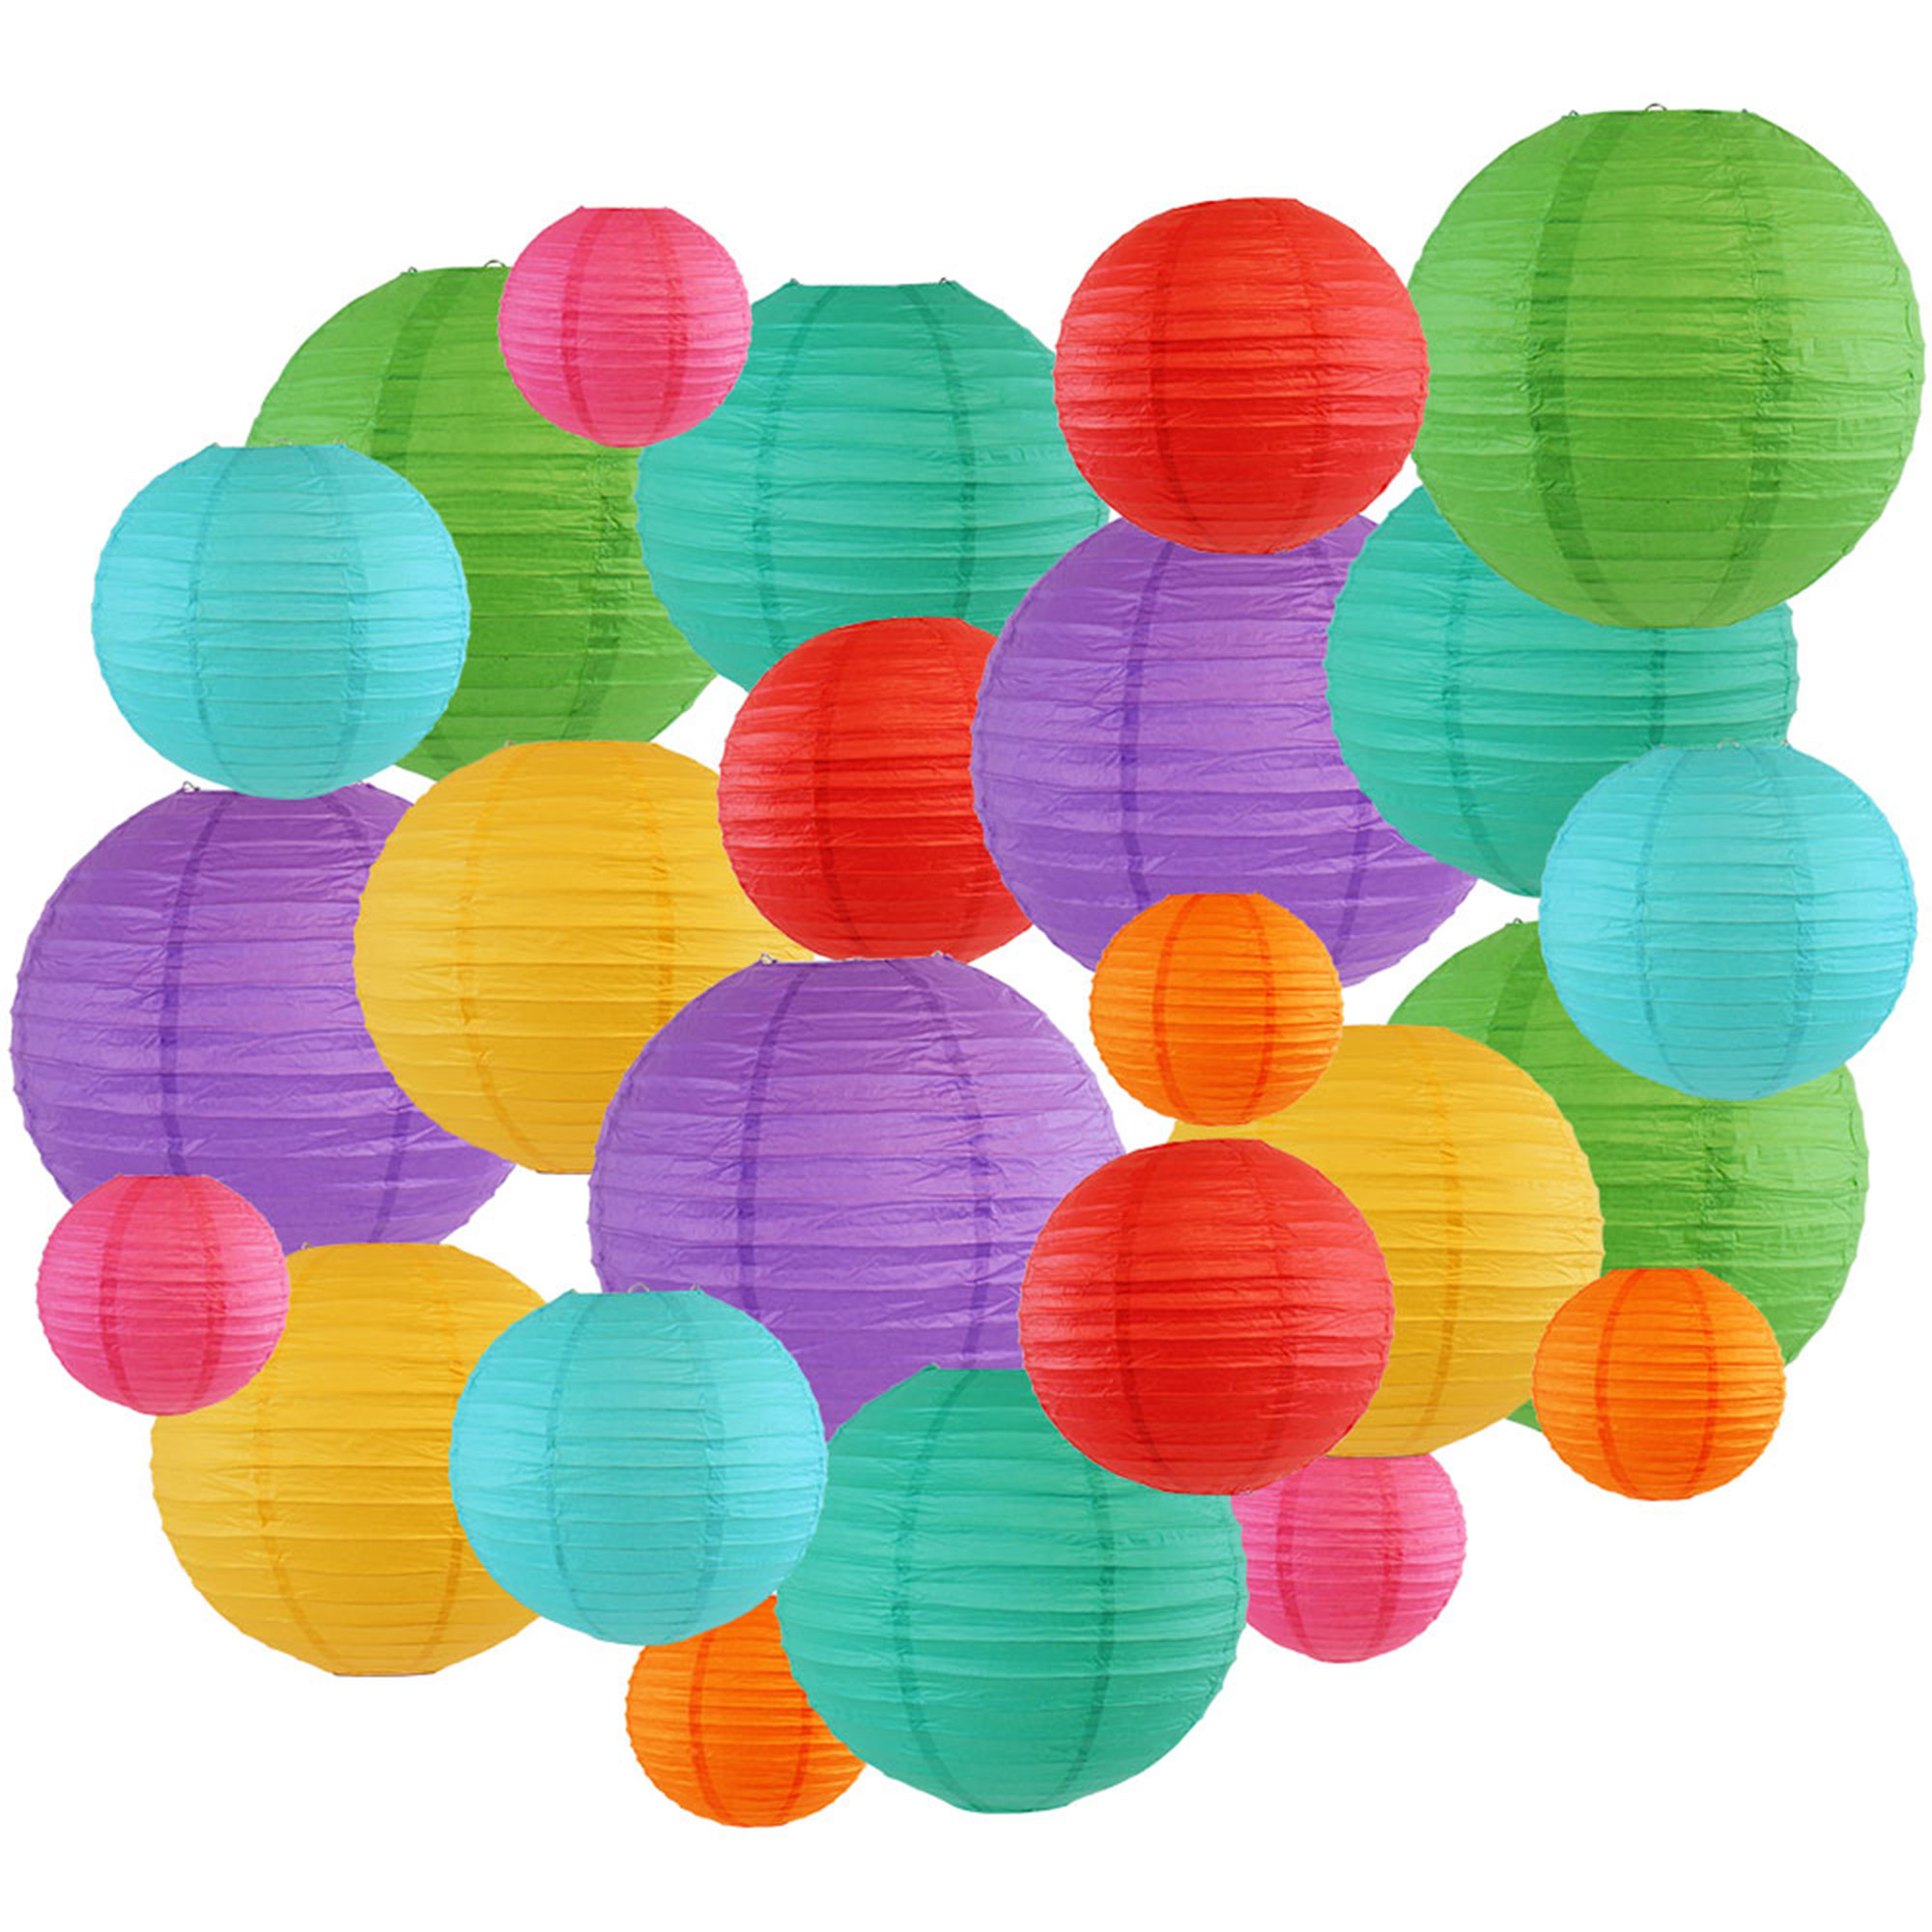 Just Artifacts Decorative Round Chinese Paper Lanterns 24pcs Assorted Sizes & Colors (Color: Tropical 2)